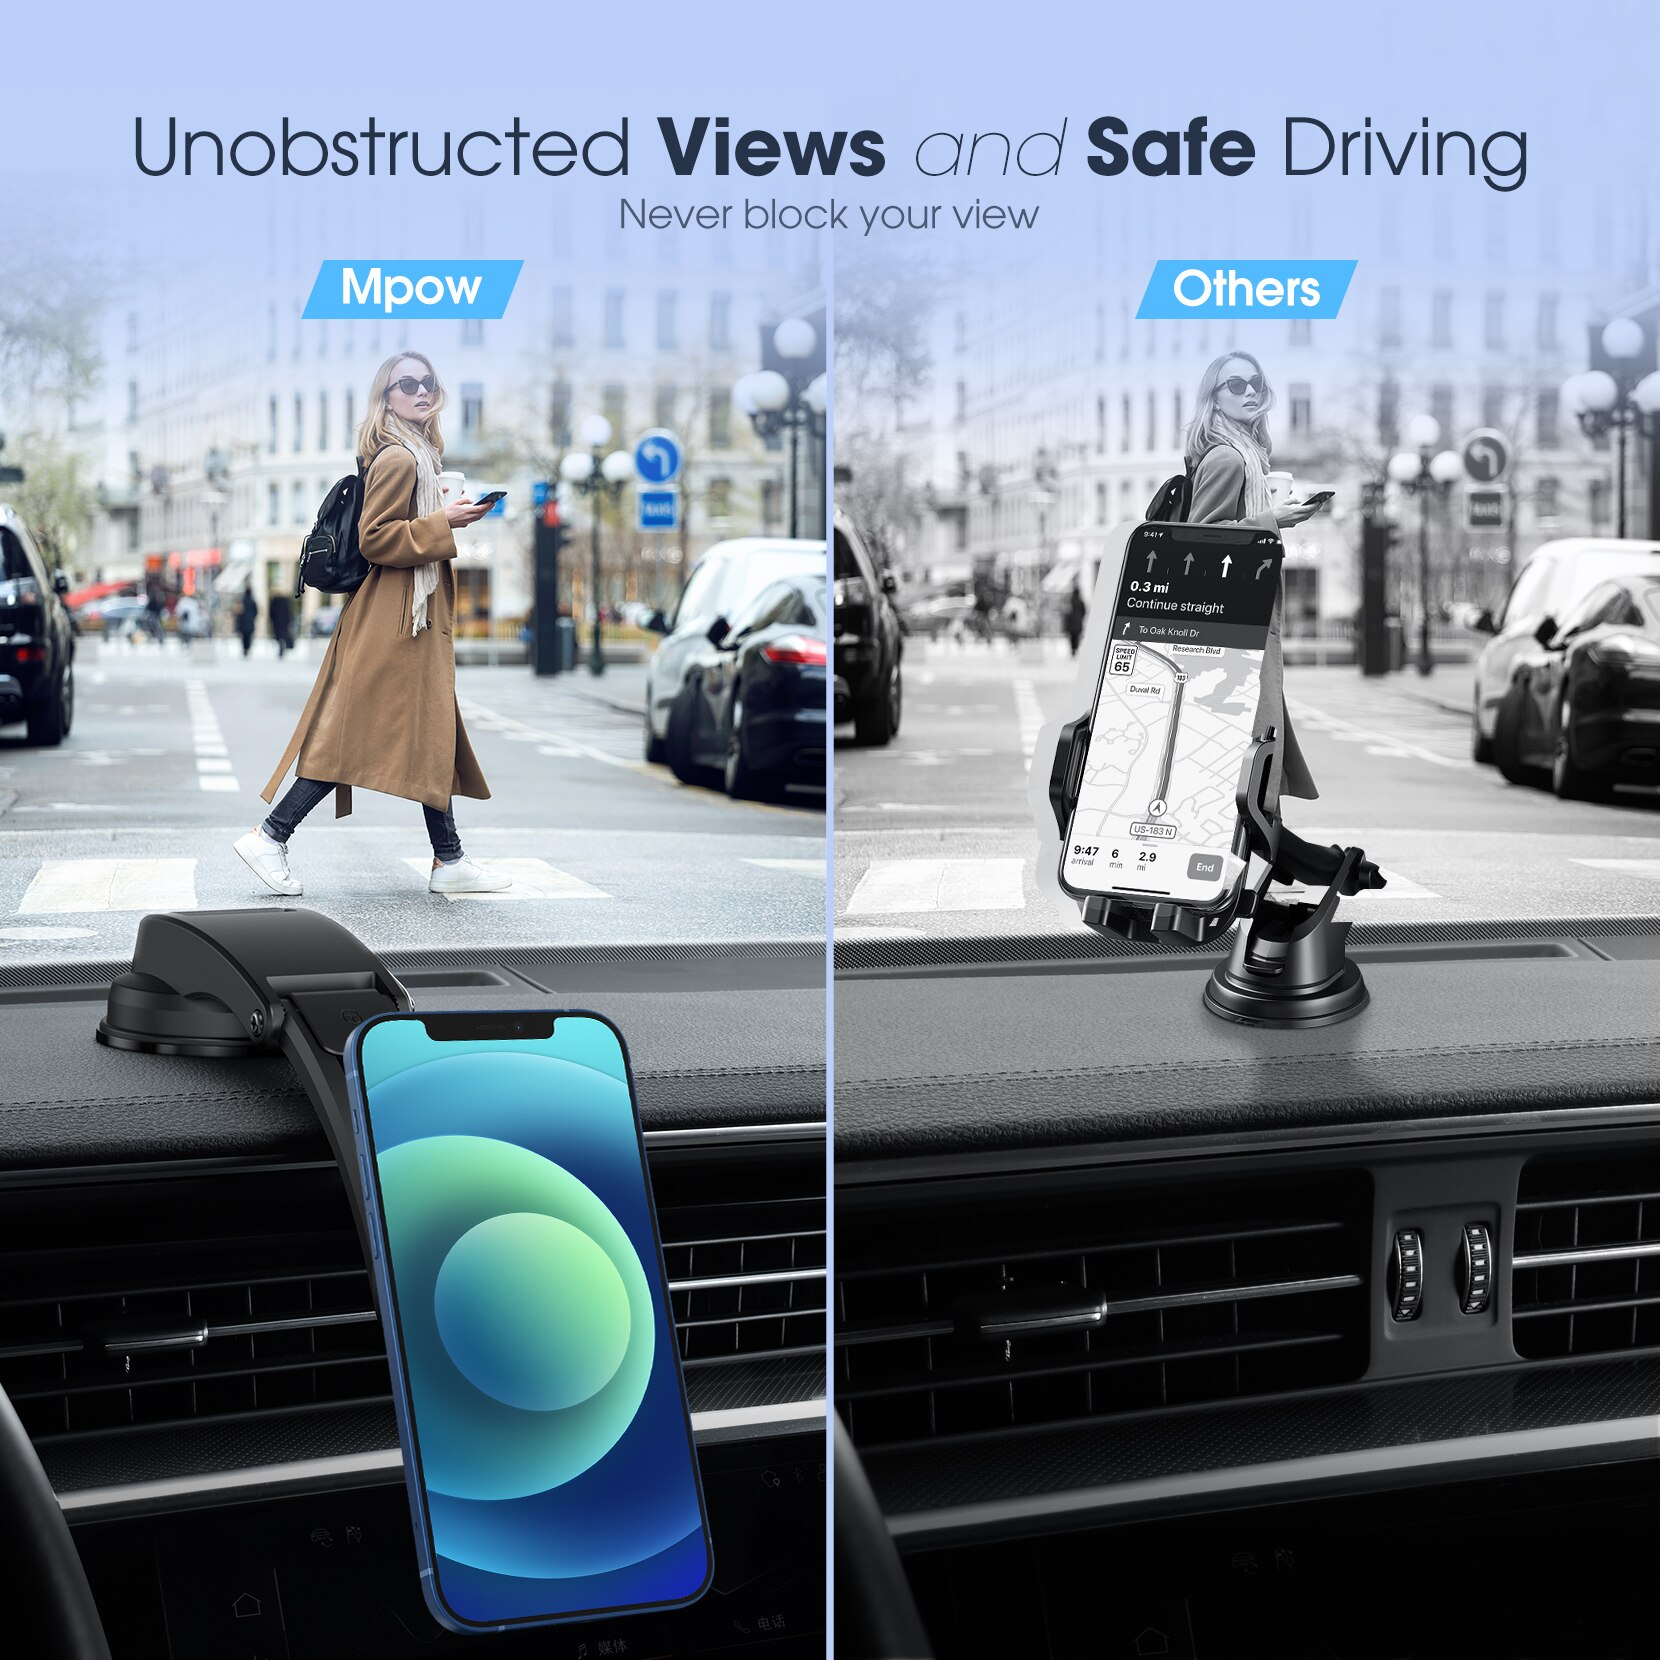 Hb2c0206b755b4409a22cff50aeda31b0a - MPOW CA171 Magnetic Phone Car Mount Dashboard Car Phone Mount Holder Strong Magnet Phone Mount for Car Compatible with iPhone